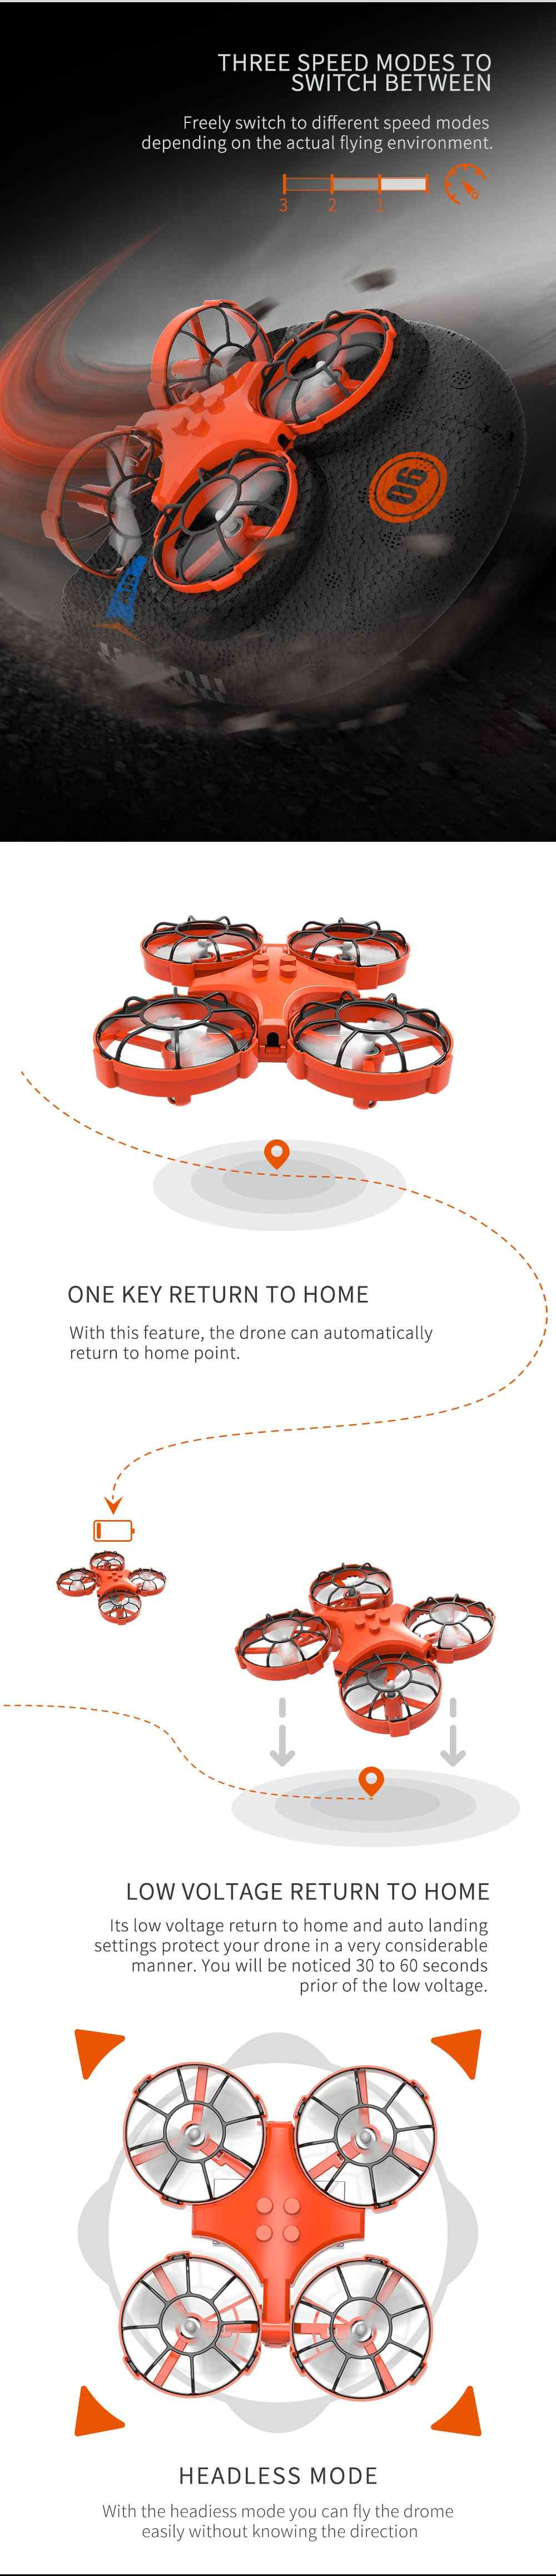 One Key Return Home Button for Easy of Flight